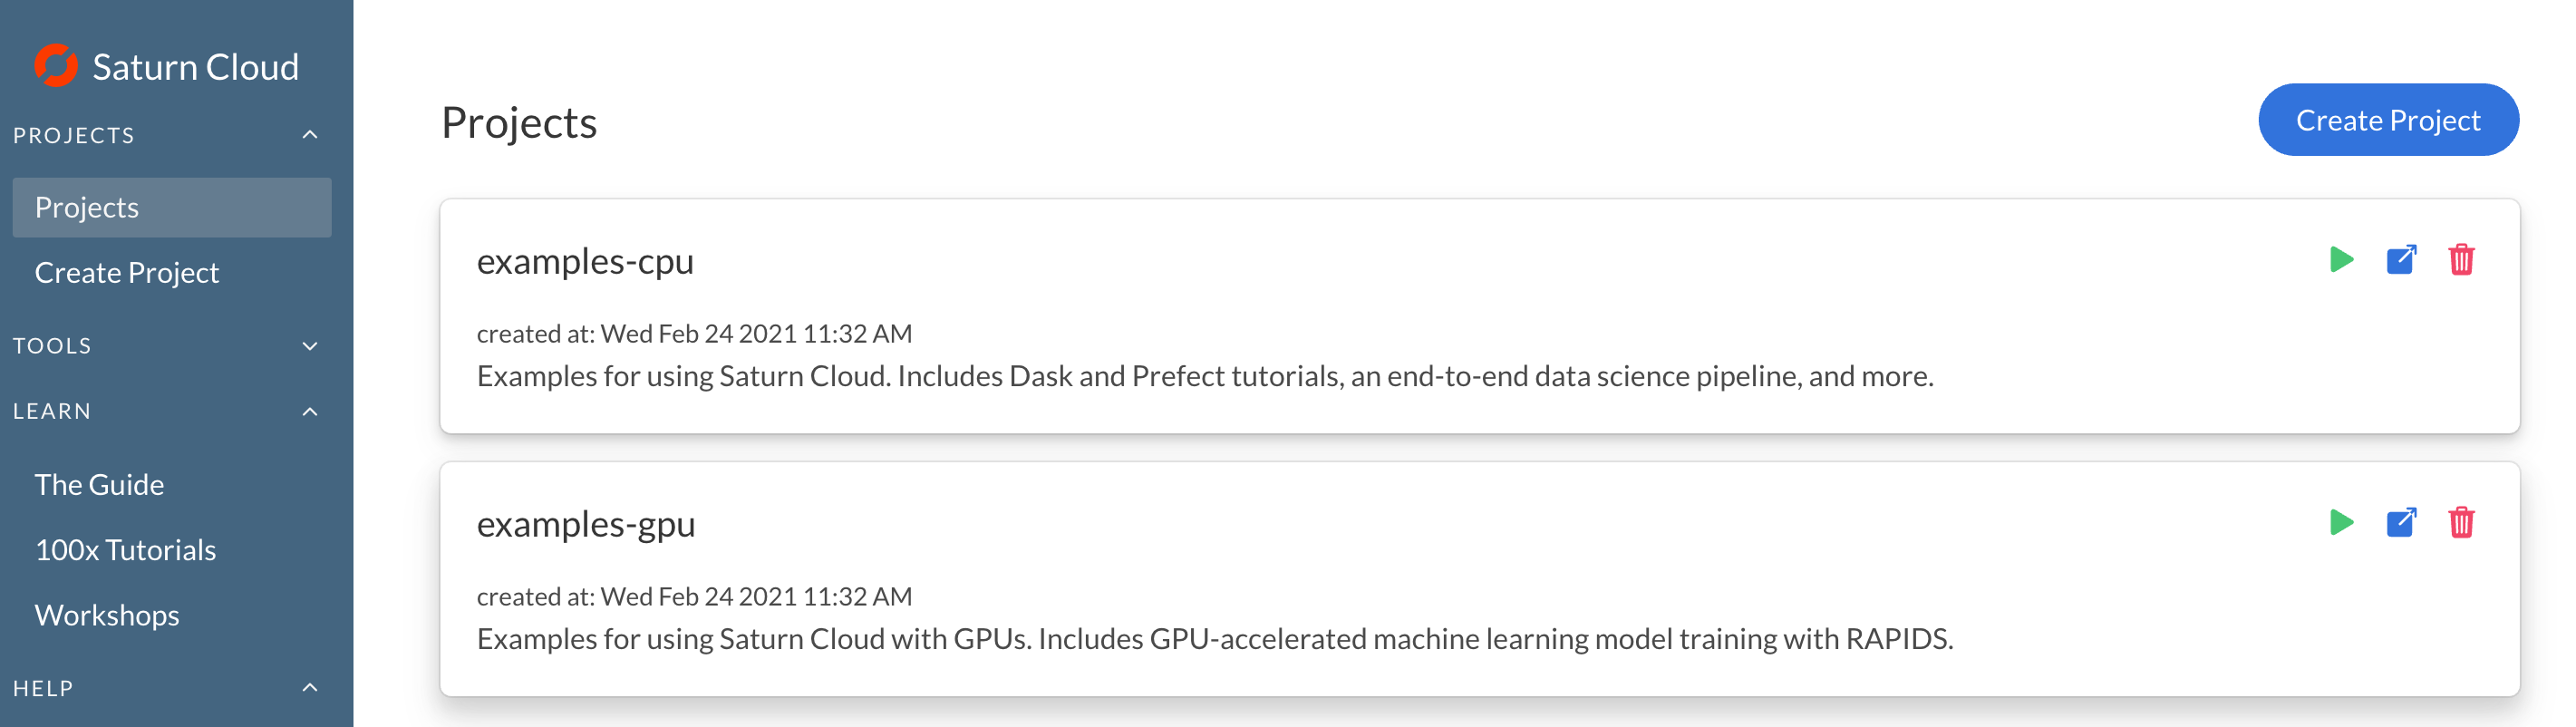 Screenshot of Saturn Cloud Projects page